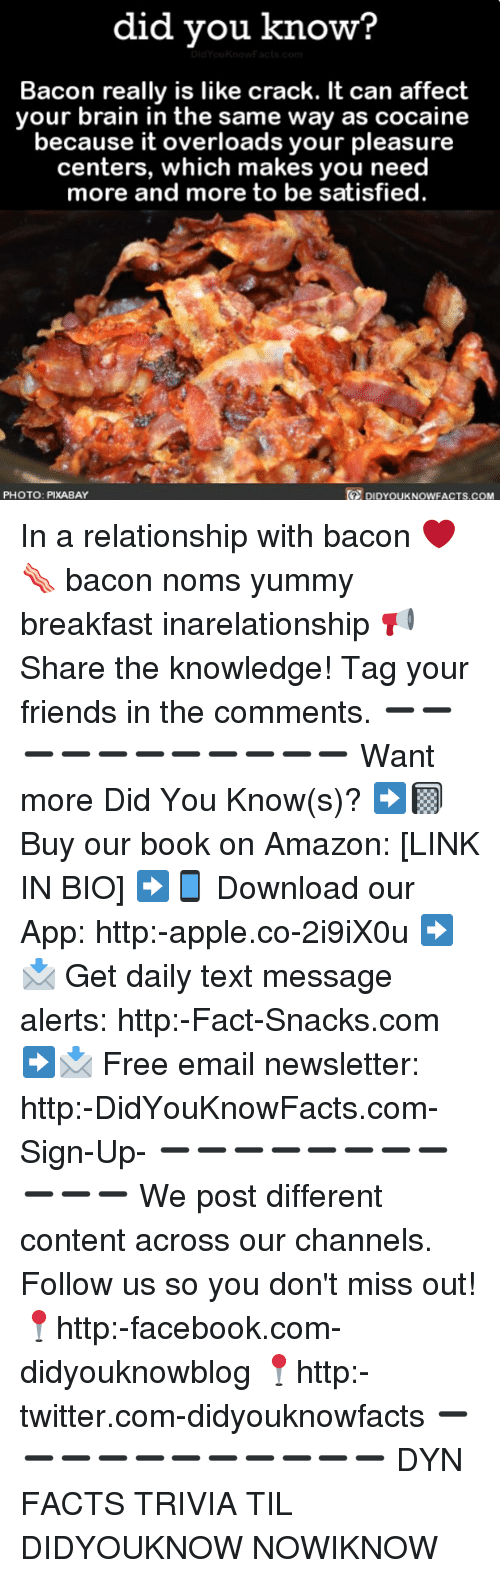 Amazon, Apple, and Facebook: did vou know?  Bacon really is like crack. It can affect  your brain in the same way as cocaine  because it overloads your pleasure  centers, which makes you need  more and more to be satisfied  te  PHOTO: PIXABAY  DIDYOUKNOWFACTS.COM In a relationship with bacon ❤️🥓 bacon noms yummy breakfast inarelationship 📢 Share the knowledge! Tag your friends in the comments. ➖➖➖➖➖➖➖➖➖➖➖ Want more Did You Know(s)? ➡📓 Buy our book on Amazon: [LINK IN BIO] ➡📱 Download our App: http:-apple.co-2i9iX0u ➡📩 Get daily text message alerts: http:-Fact-Snacks.com ➡📩 Free email newsletter: http:-DidYouKnowFacts.com-Sign-Up- ➖➖➖➖➖➖➖➖➖➖➖ We post different content across our channels. Follow us so you don't miss out! 📍http:-facebook.com-didyouknowblog 📍http:-twitter.com-didyouknowfacts ➖➖➖➖➖➖➖➖➖➖➖ DYN FACTS TRIVIA TIL DIDYOUKNOW NOWIKNOW